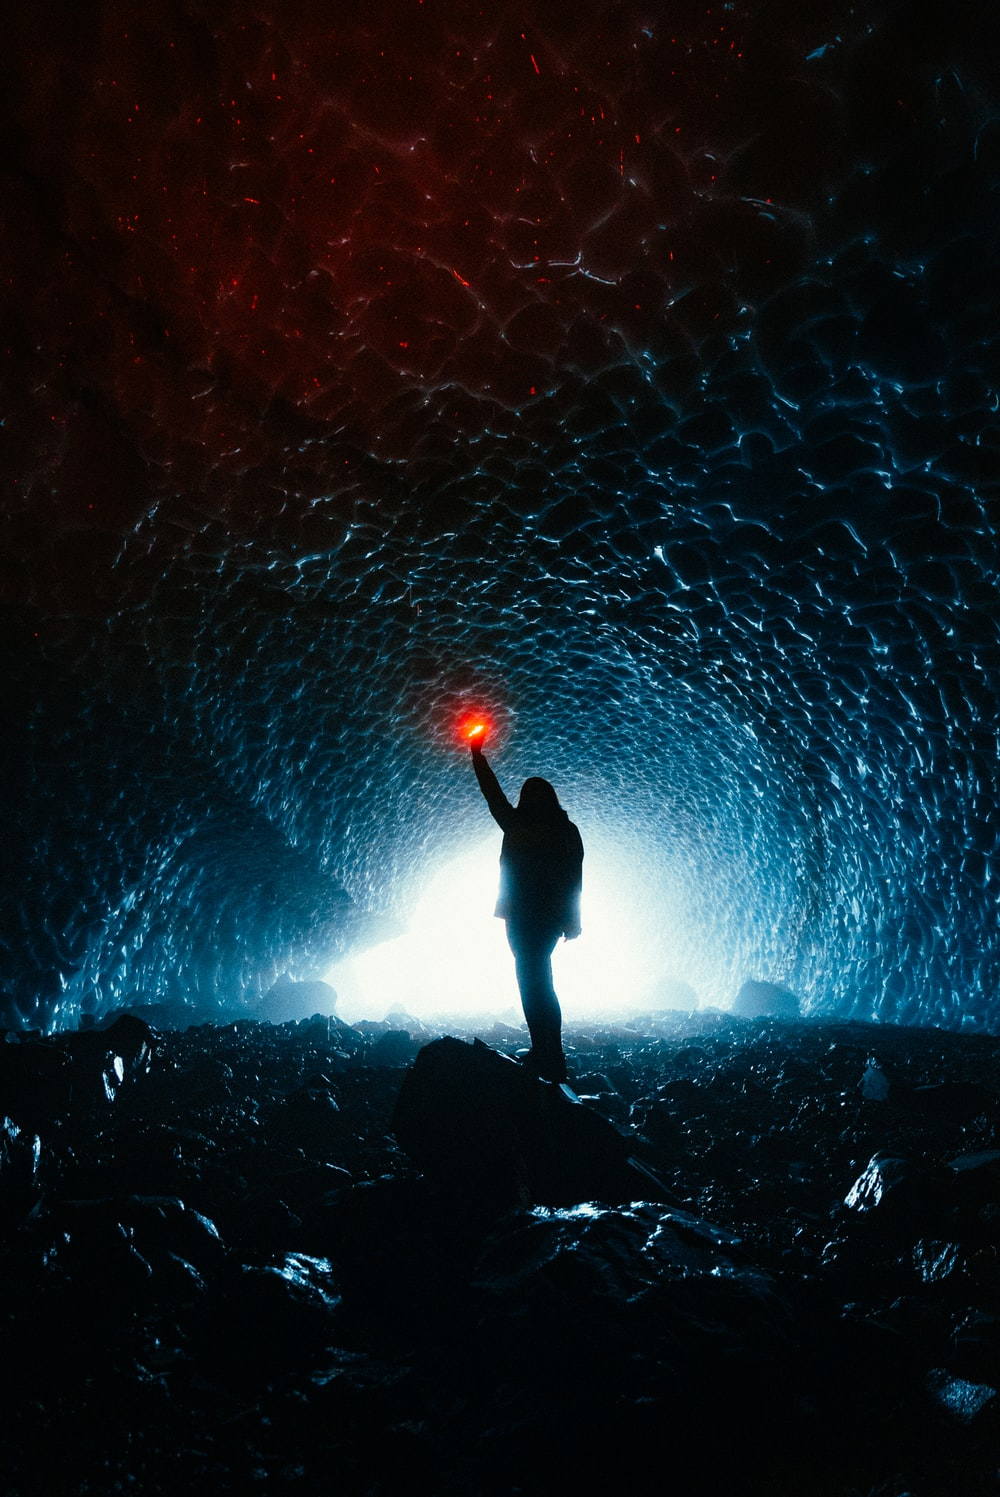 silhouette of person standing on rock with blue lights